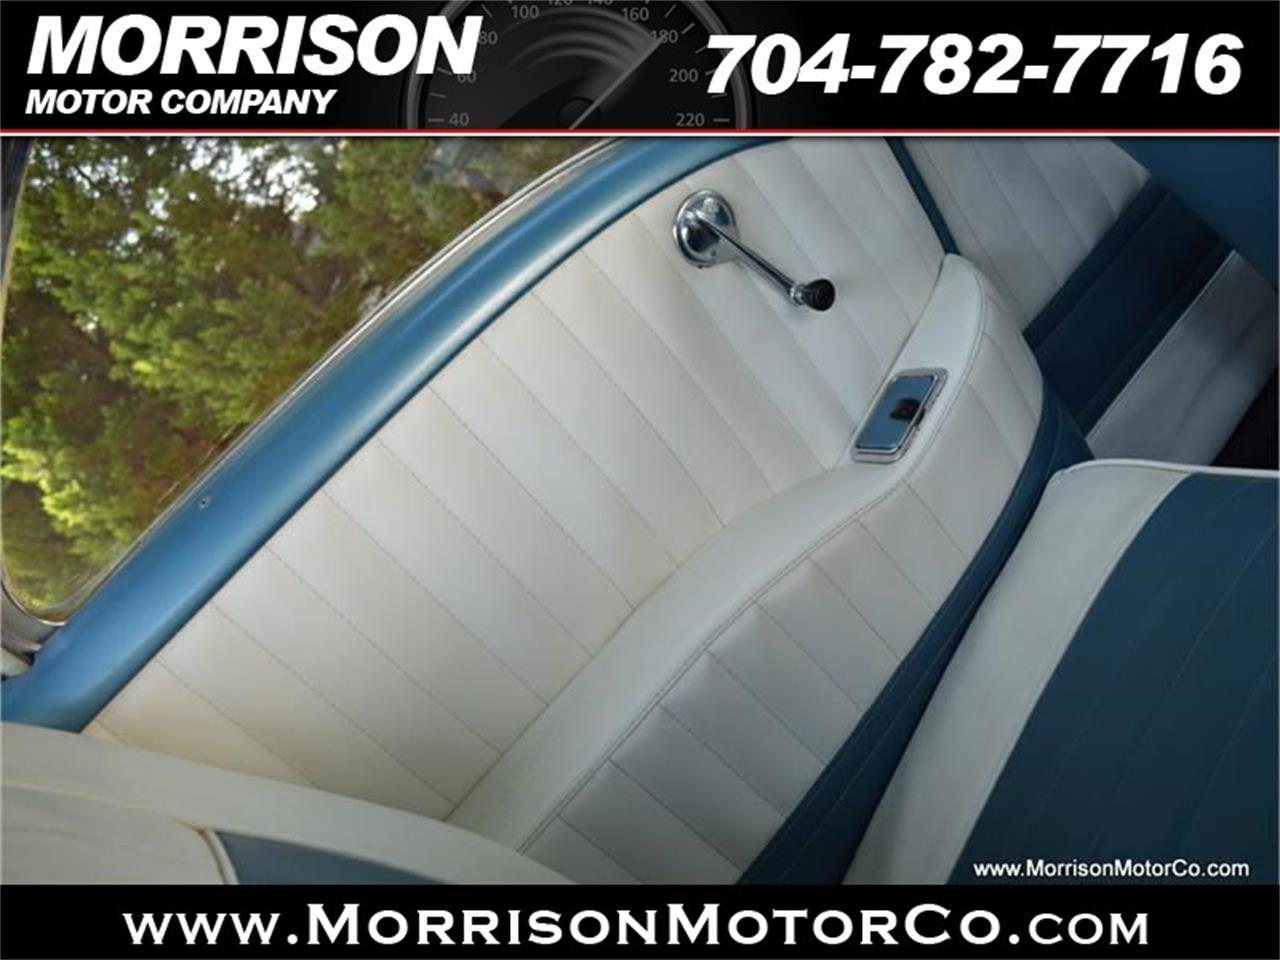 Large Picture of 1956 Buick Special Riviera located in Concord North Carolina - $22,900.00 Offered by Morrison Motor Company - M8P8